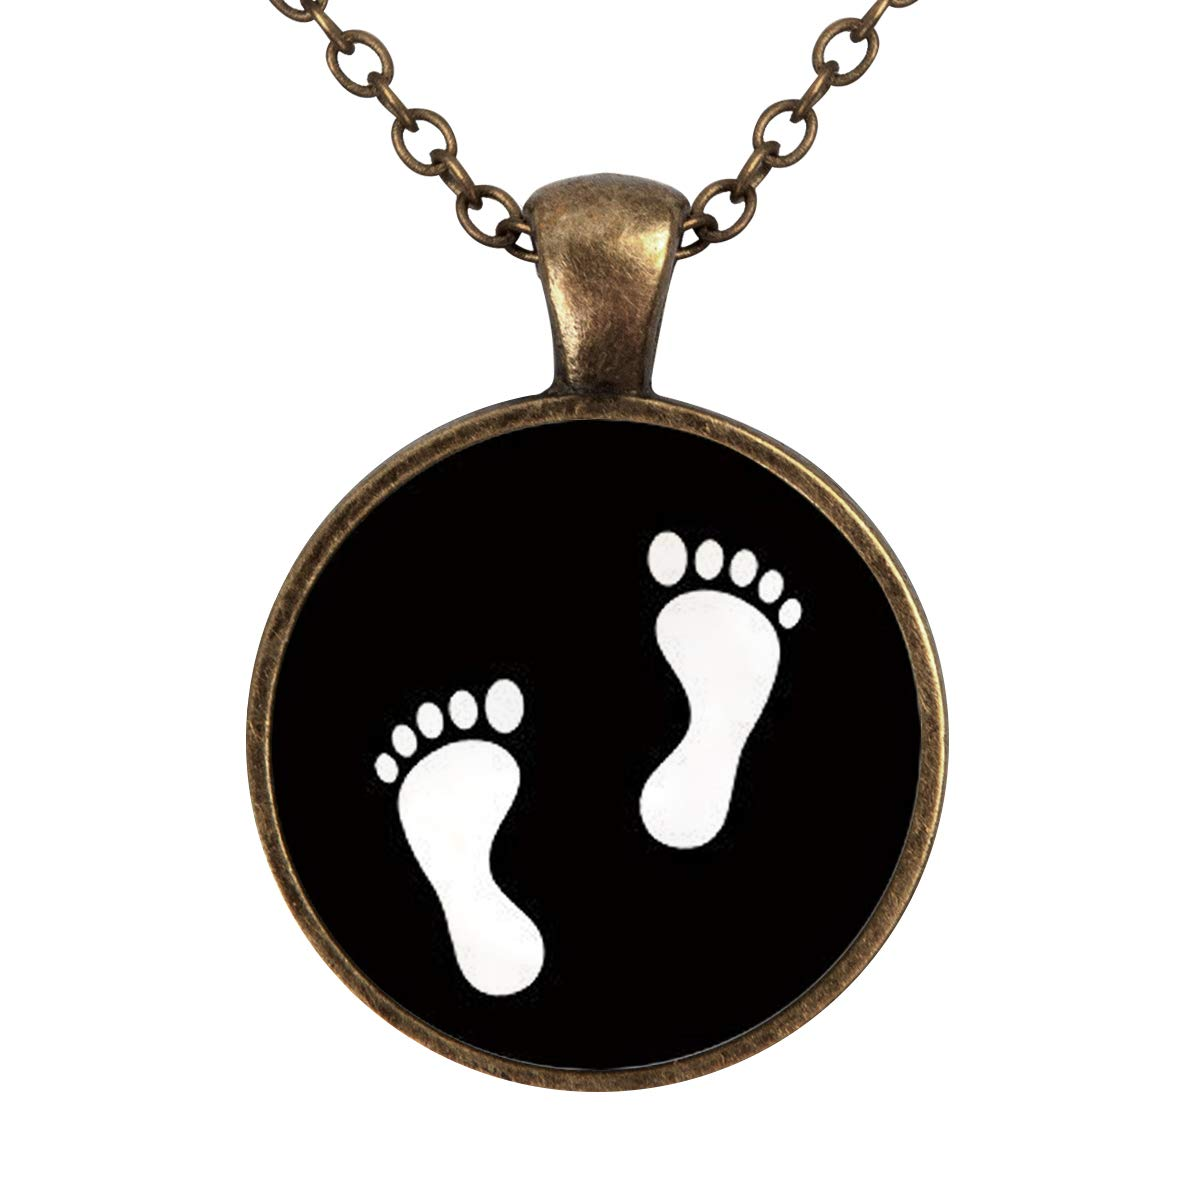 Family Decor Lovely Footprints Print Pendant Necklace Cabochon Glass Vintage Bronze Chain Necklace Jewelry Handmade